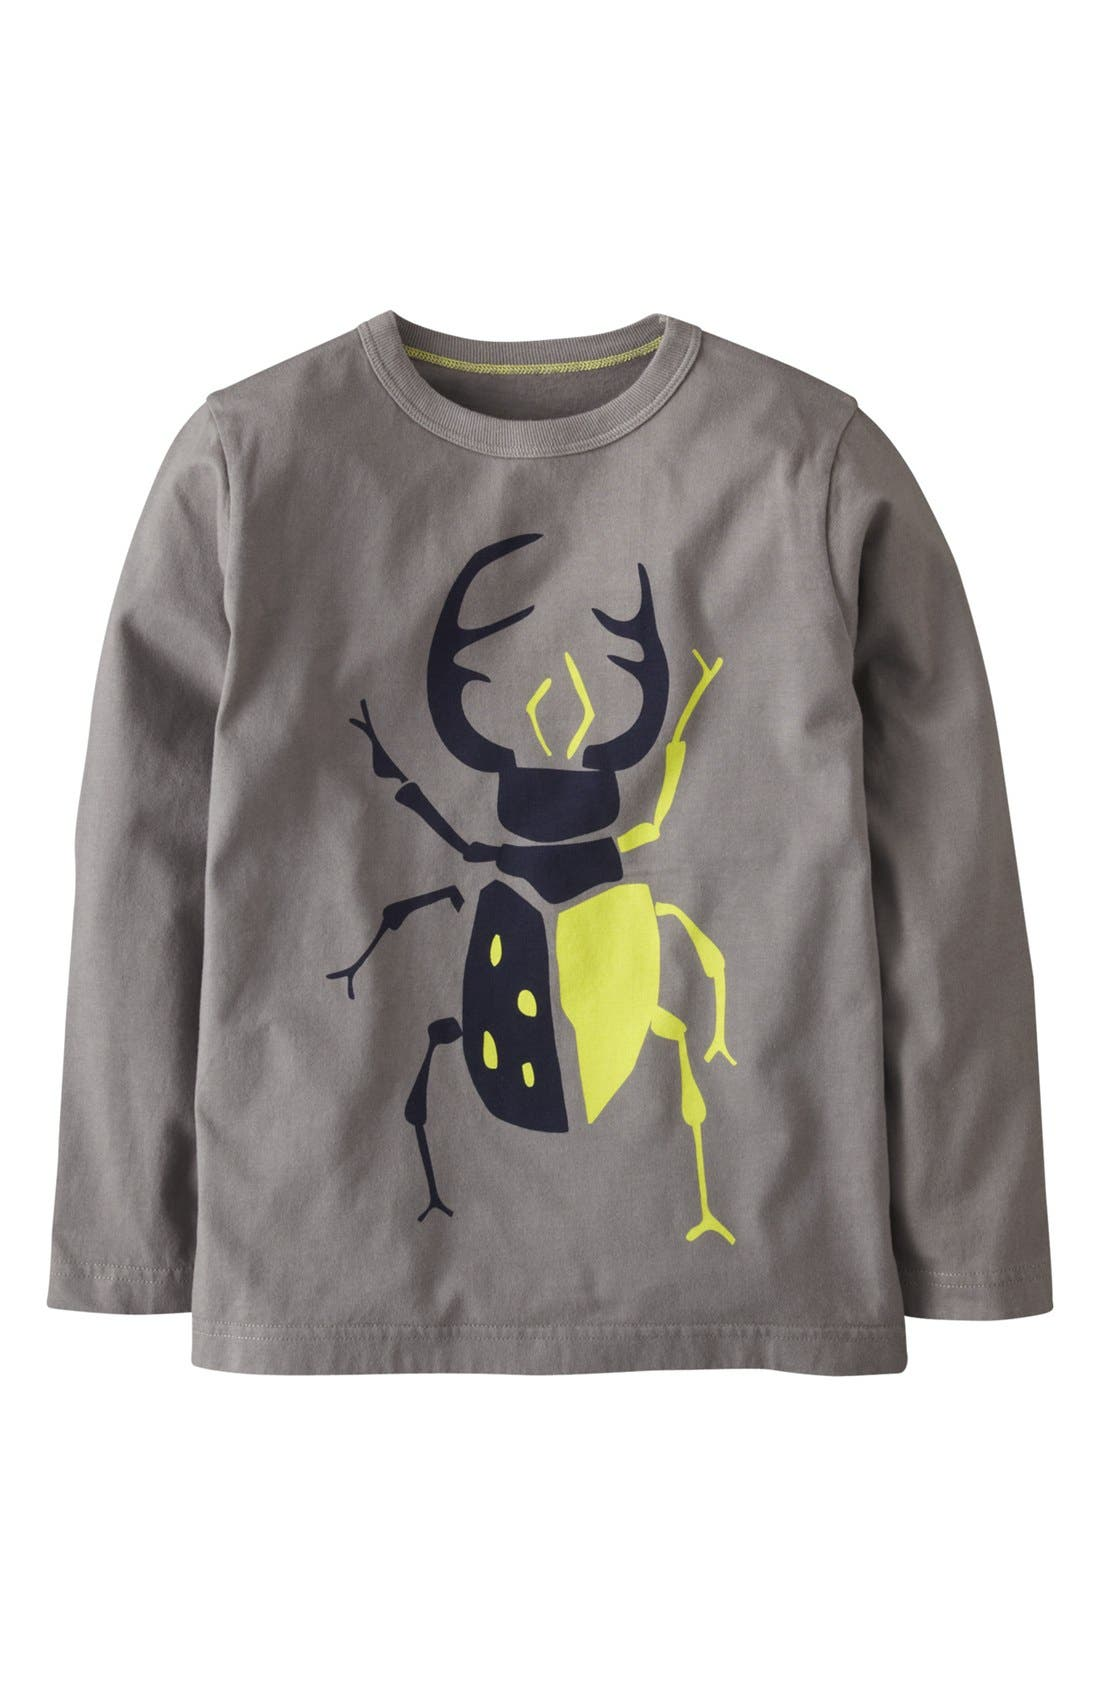 Main Image - Mini Boden 'Big Bugs' Long Sleeve T-Shirt (Toddler Boys)